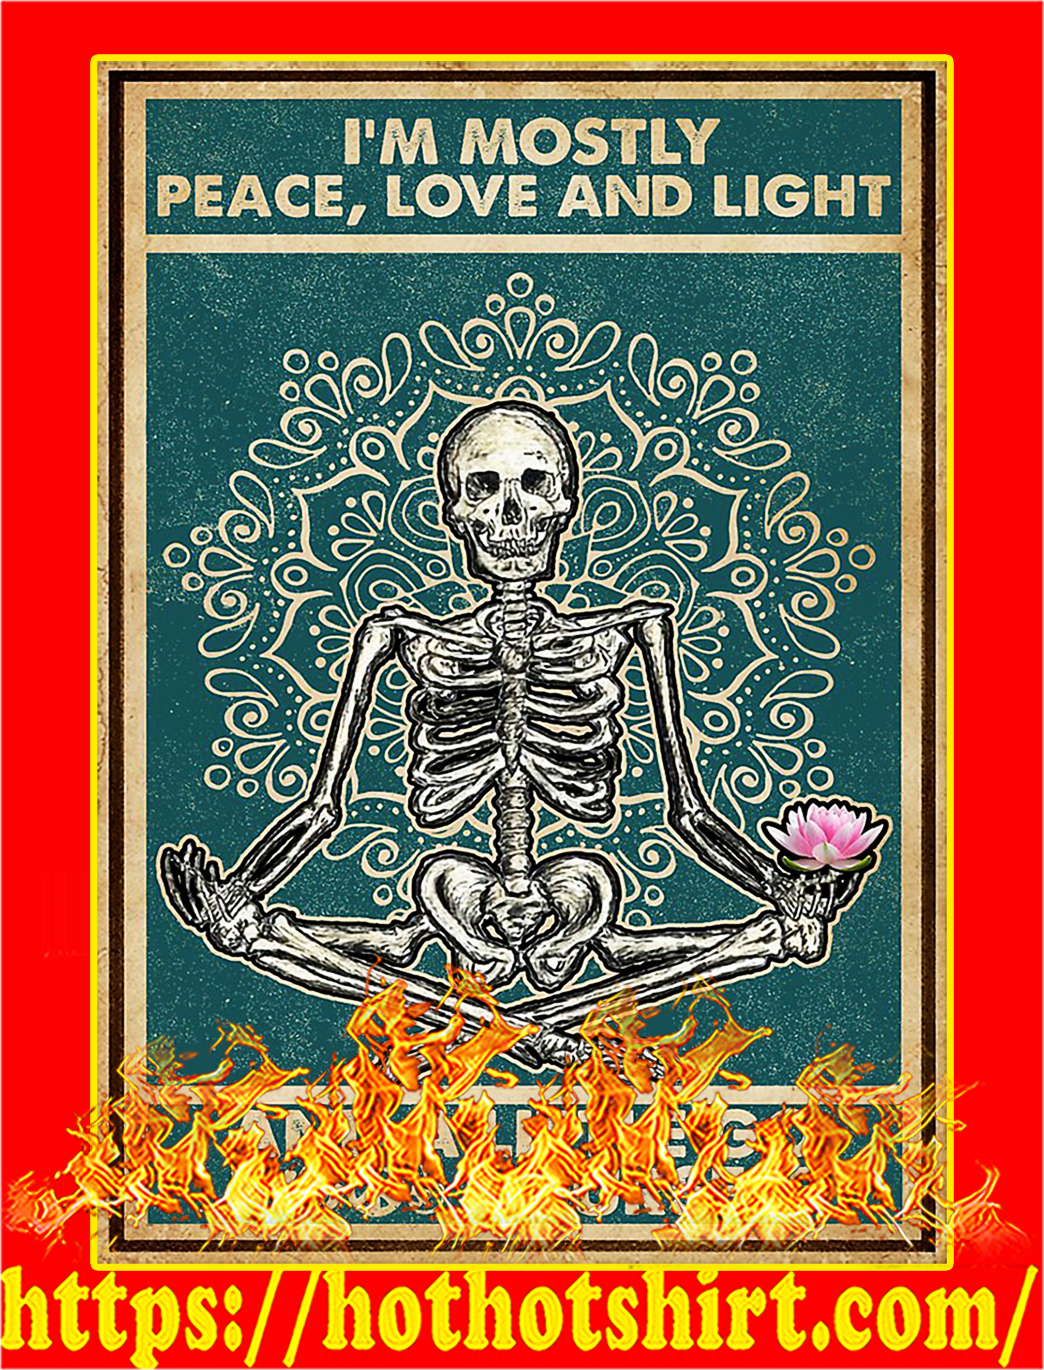 I'm mostly peace love and light and a little go fuck yourself poster - A2